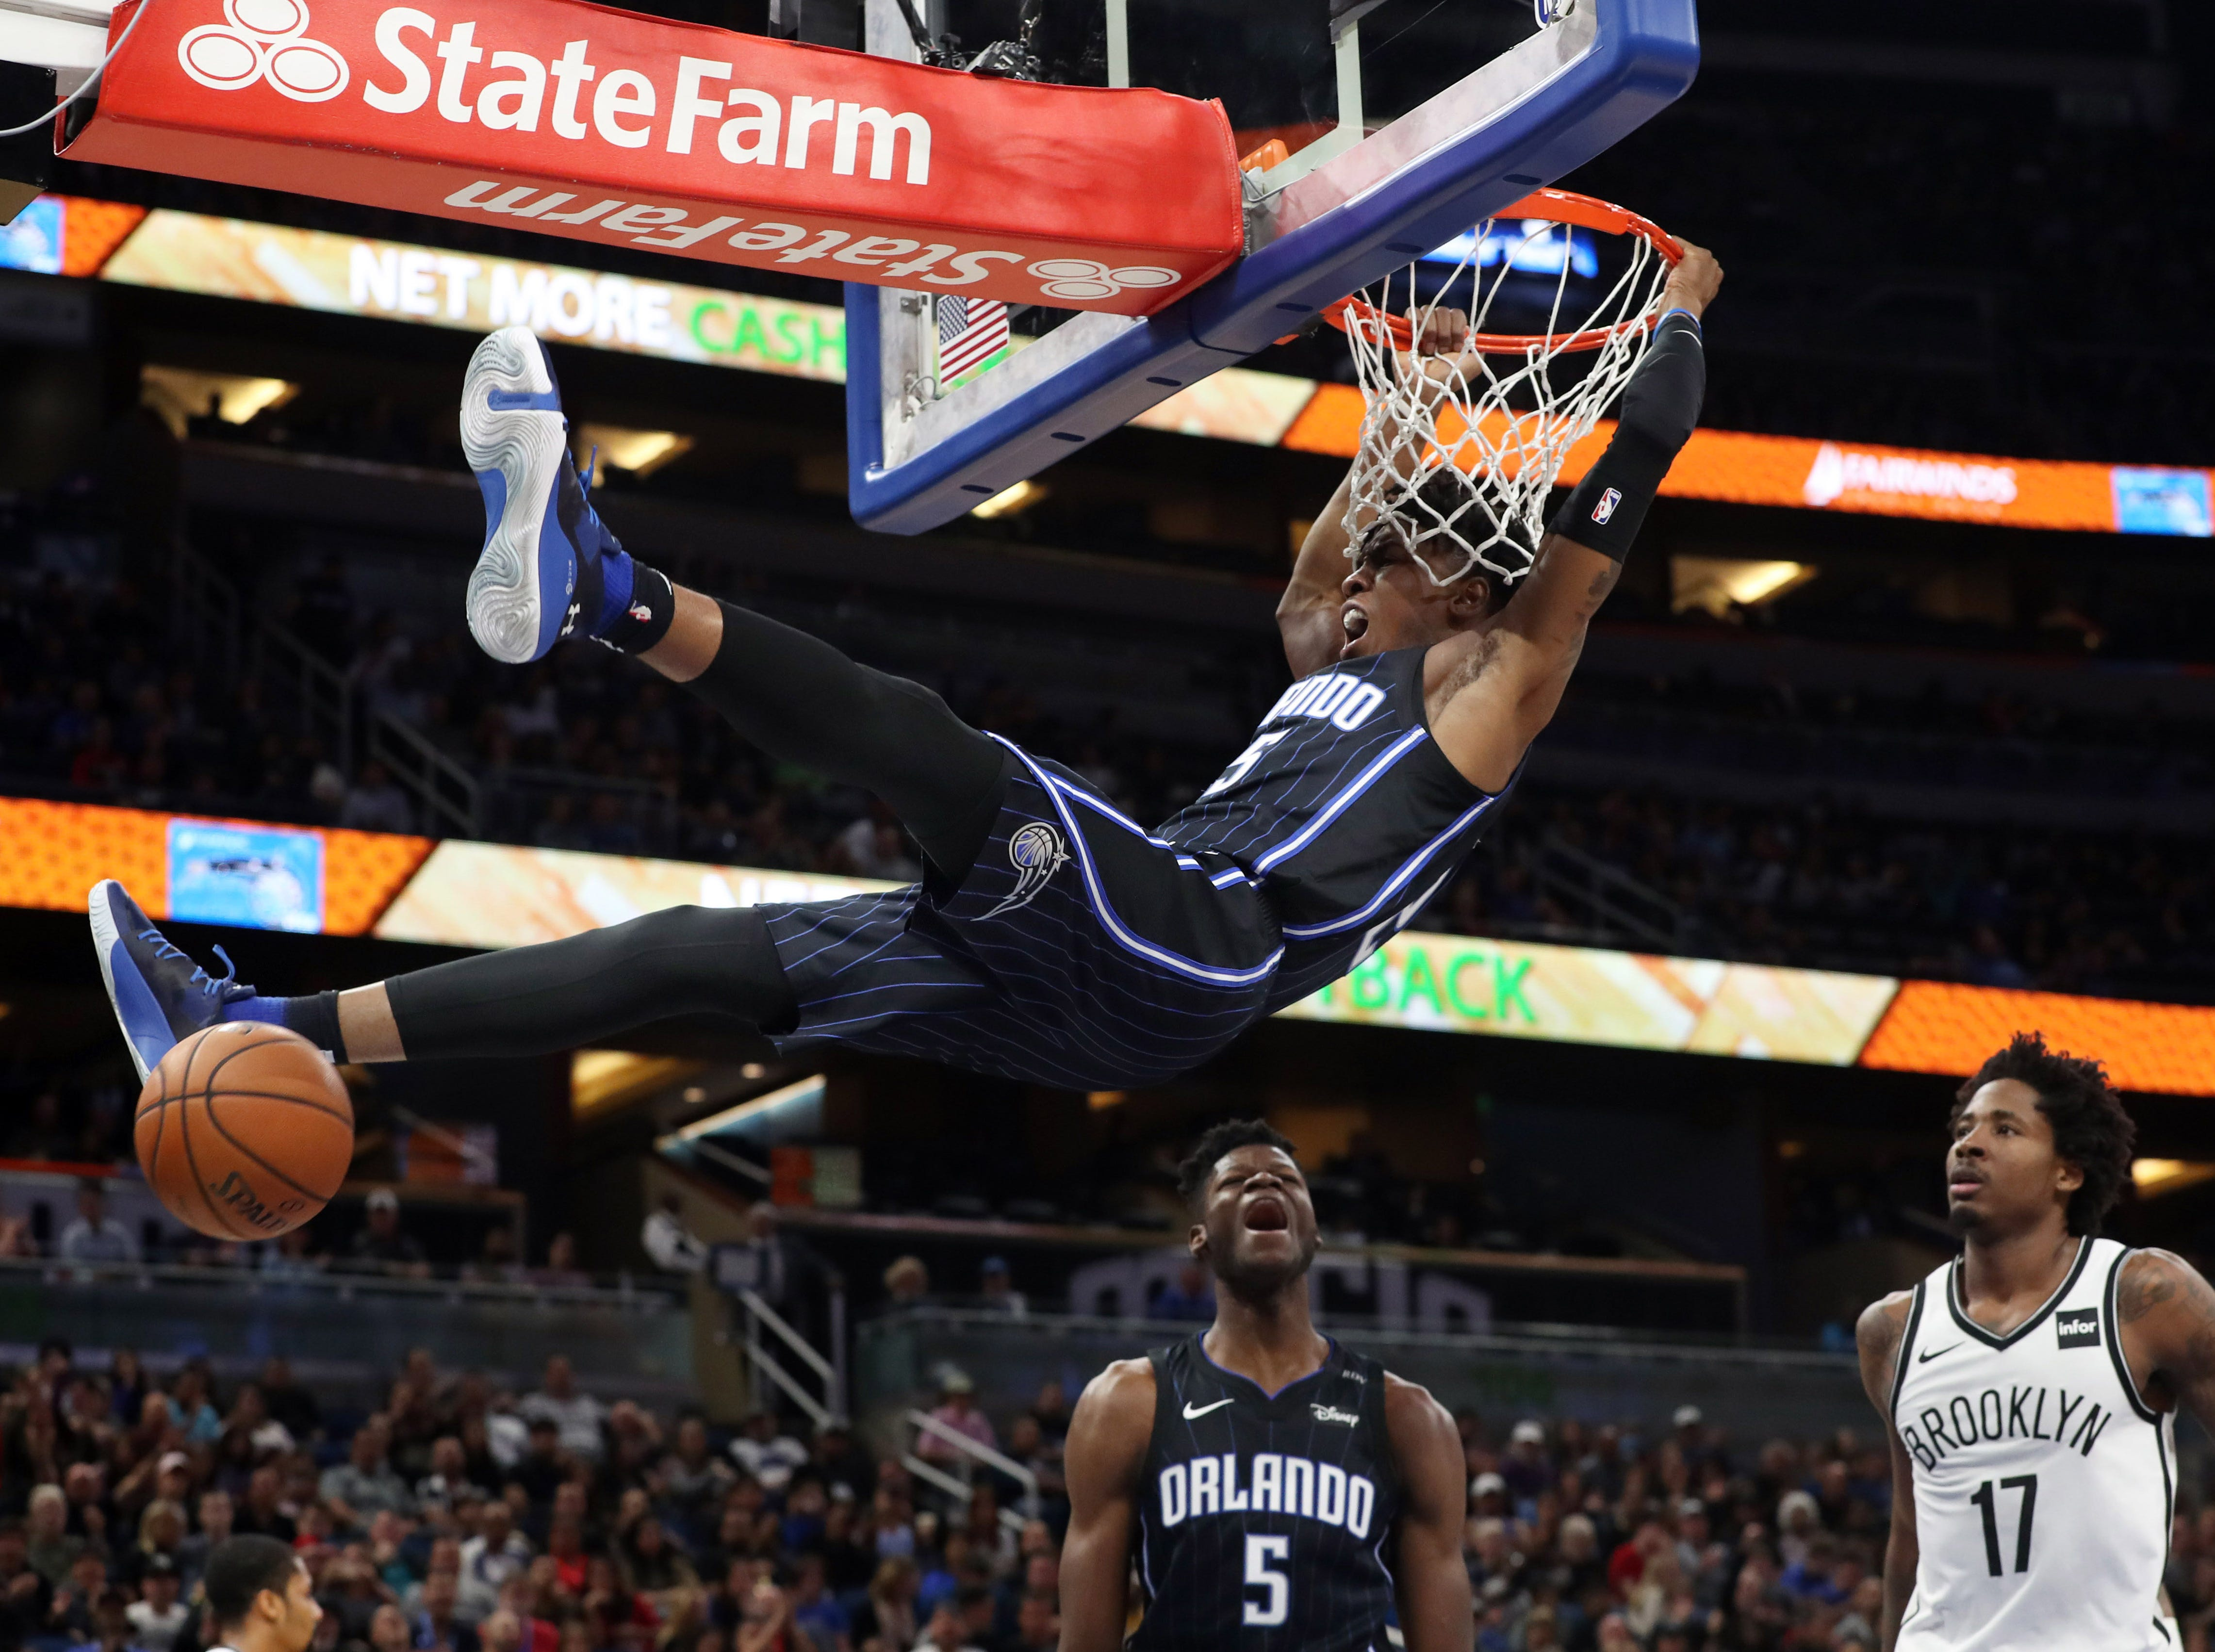 Jan. 18: Orlando Magic forward Wesley Iwundu (25) dunks against the Brooklyn Nets during the second quarter at Amway Center.